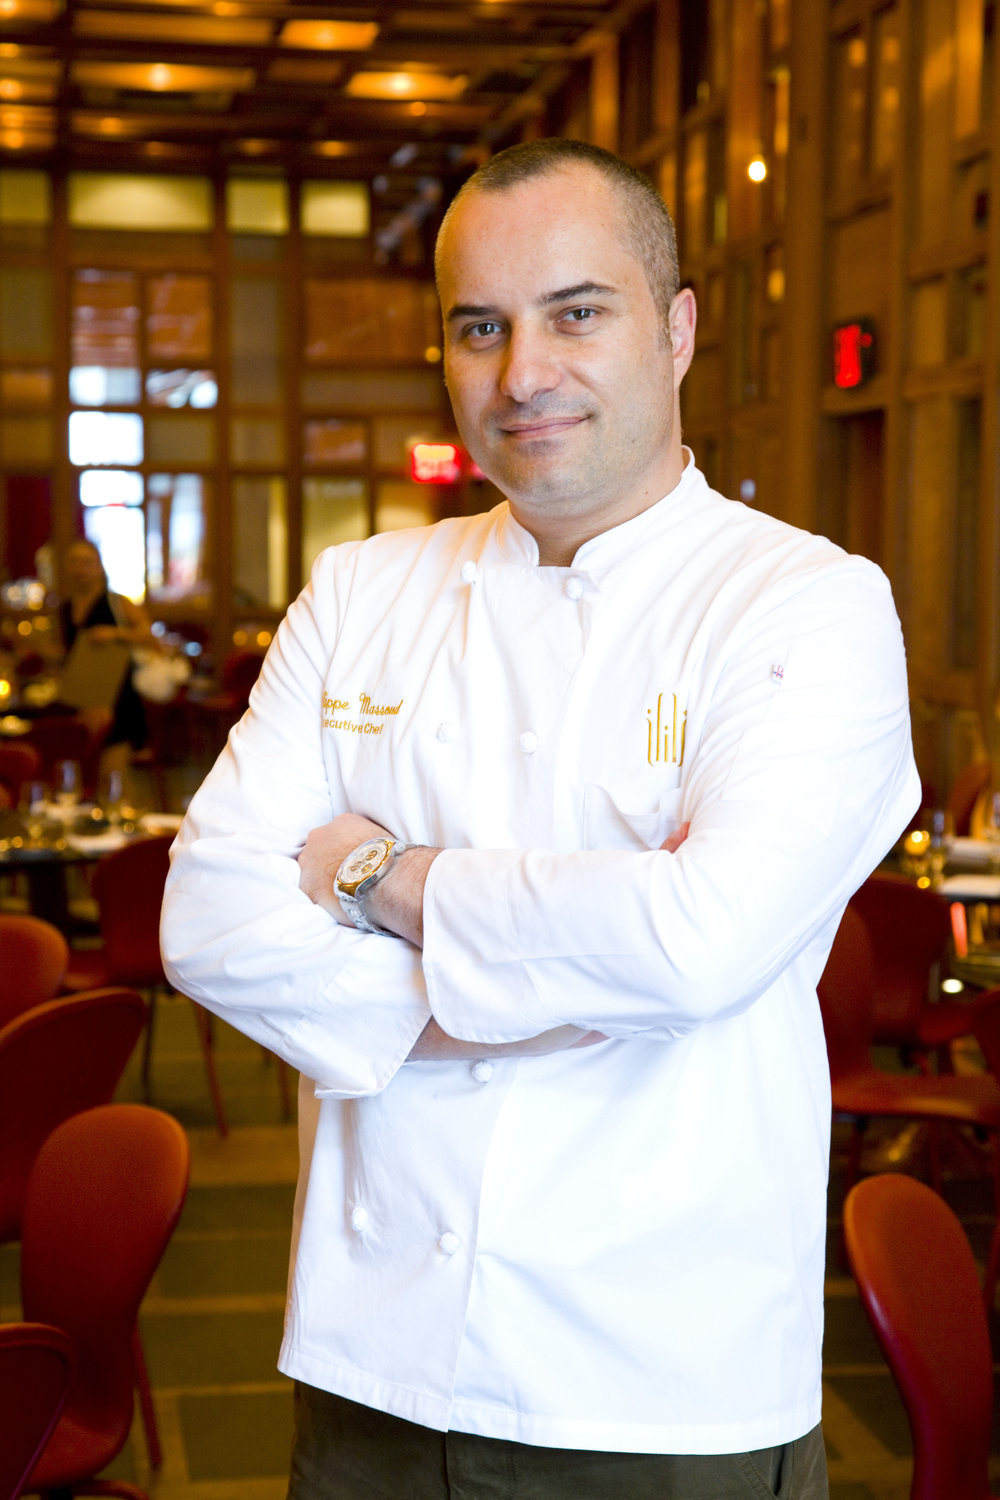 Philippe Massoud, CEO & Executive Chef of Mediterranean Restaurant, ILILI on 5th Ave NYC